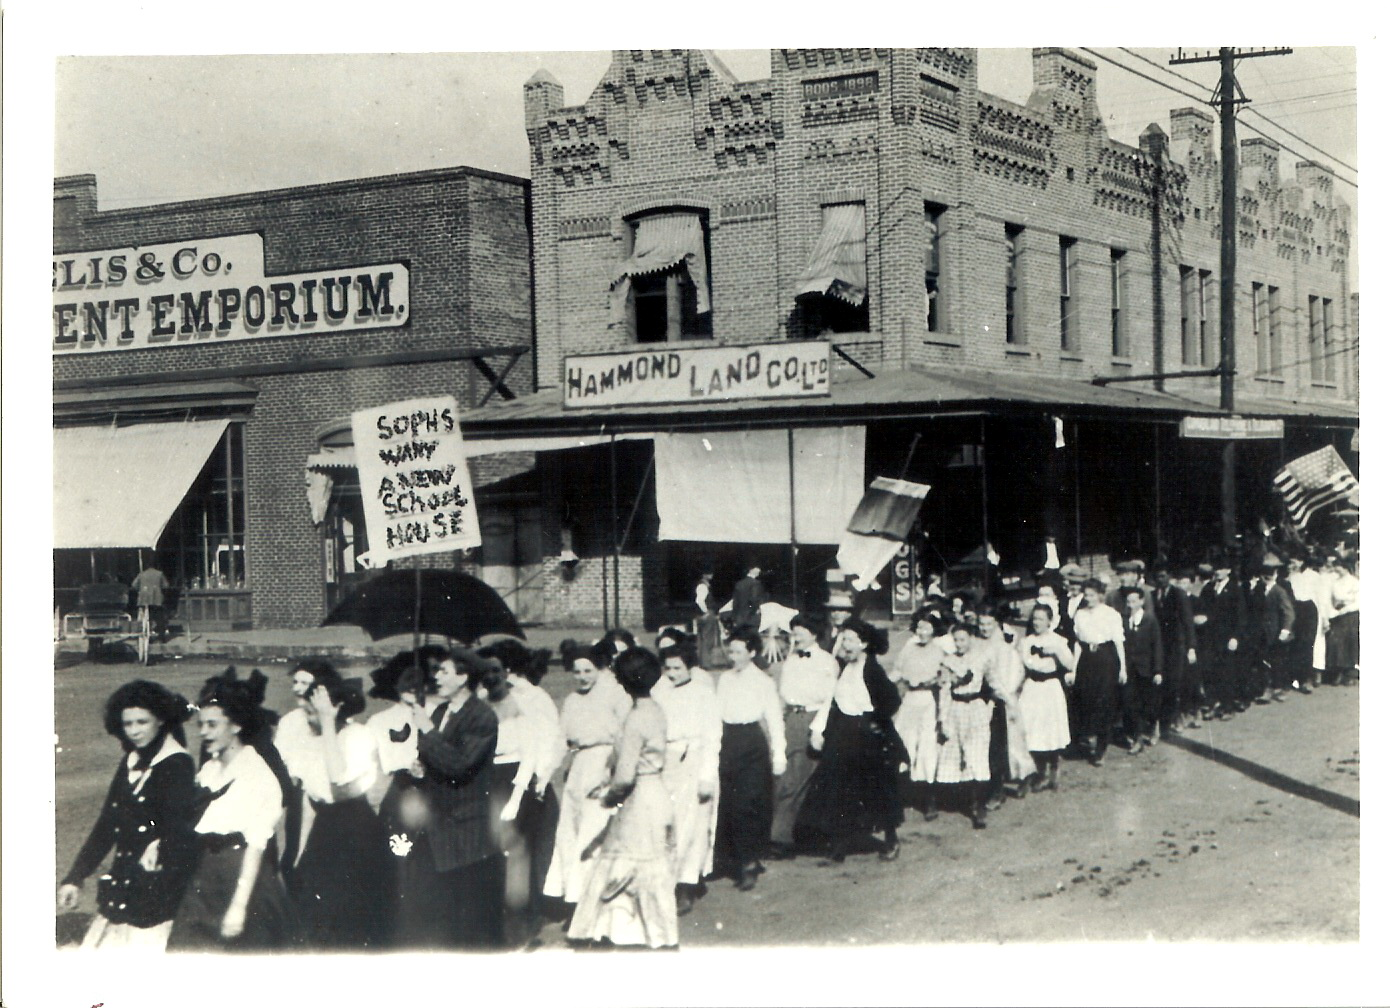 Boos Building in the background during a march for a new schoolhouse (no date).